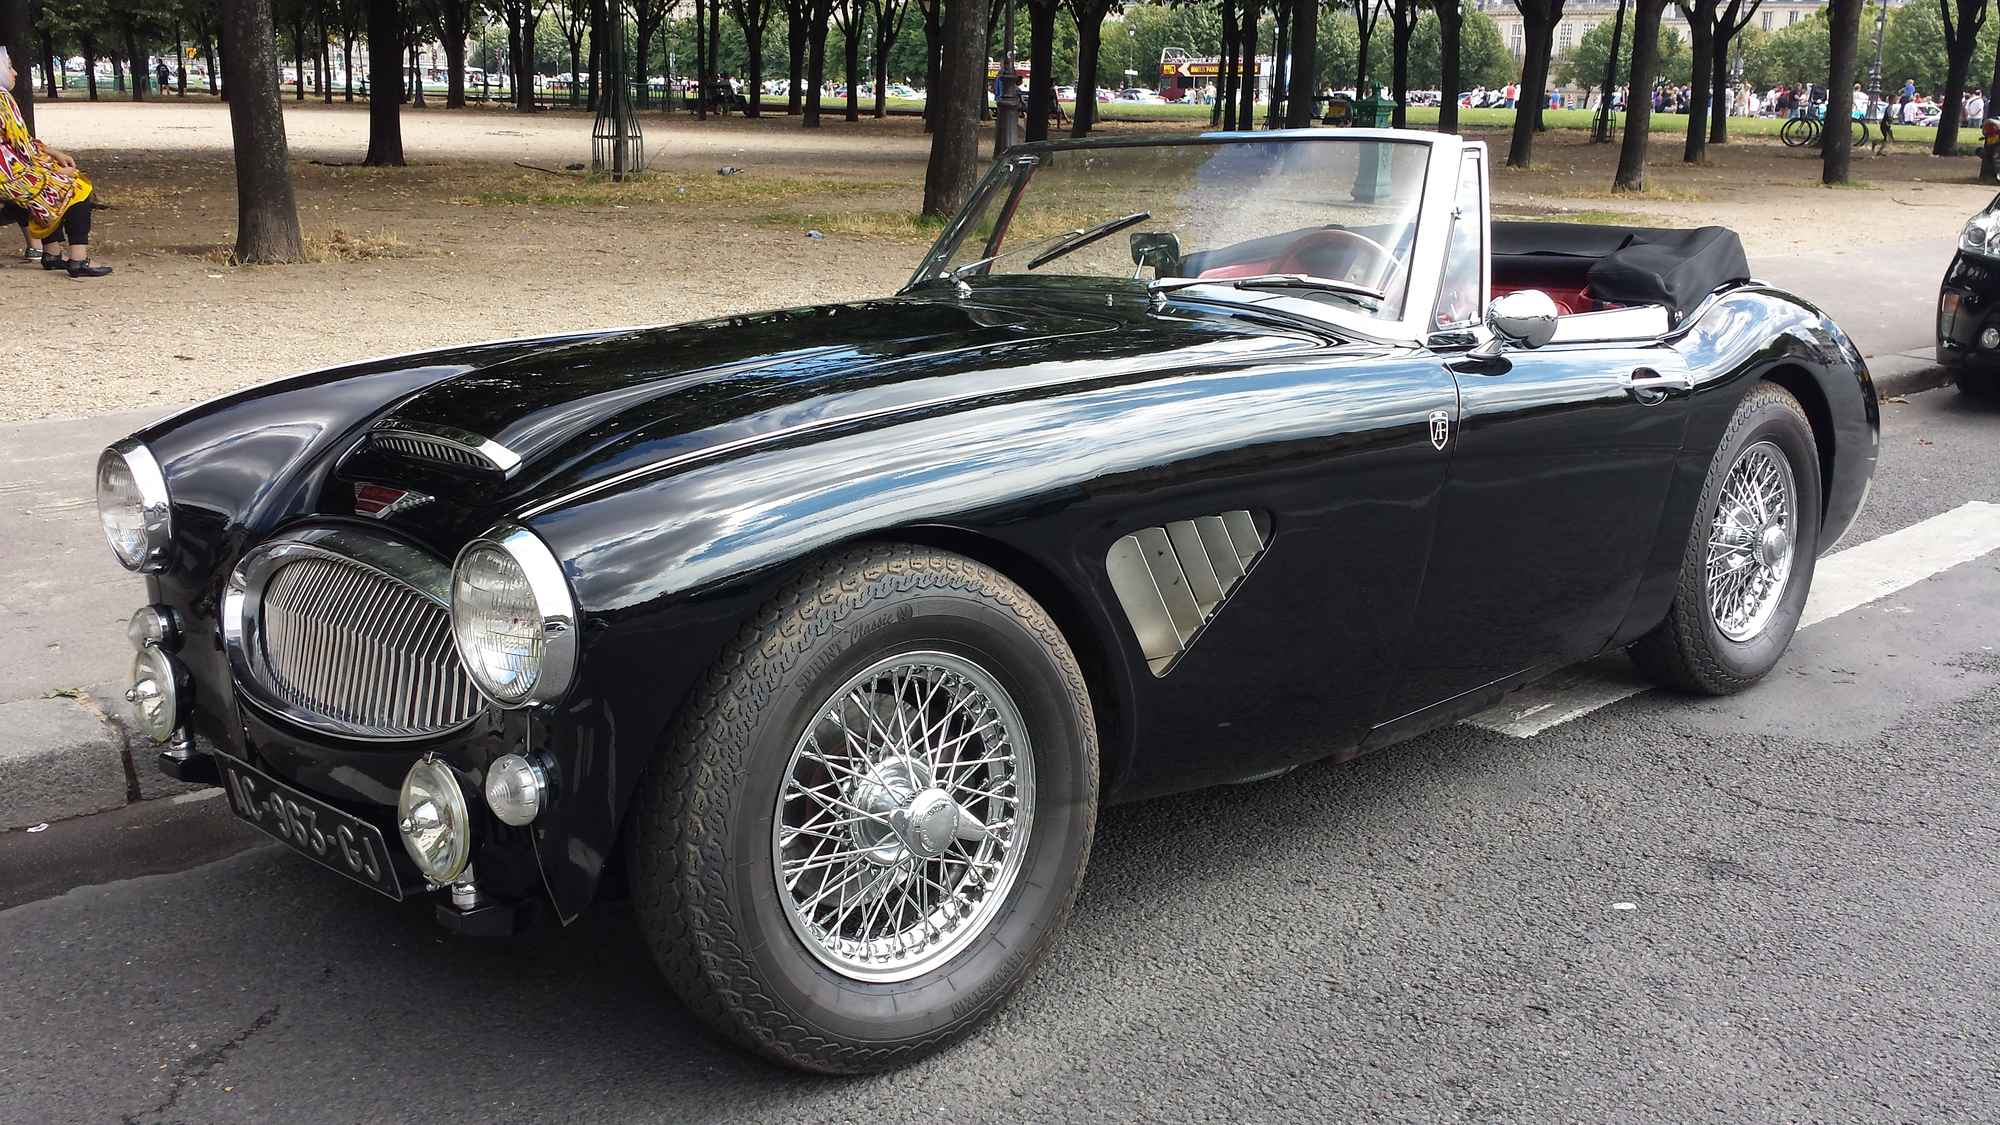 austin healey 3000 mk3 1965 noire classic car. Black Bedroom Furniture Sets. Home Design Ideas